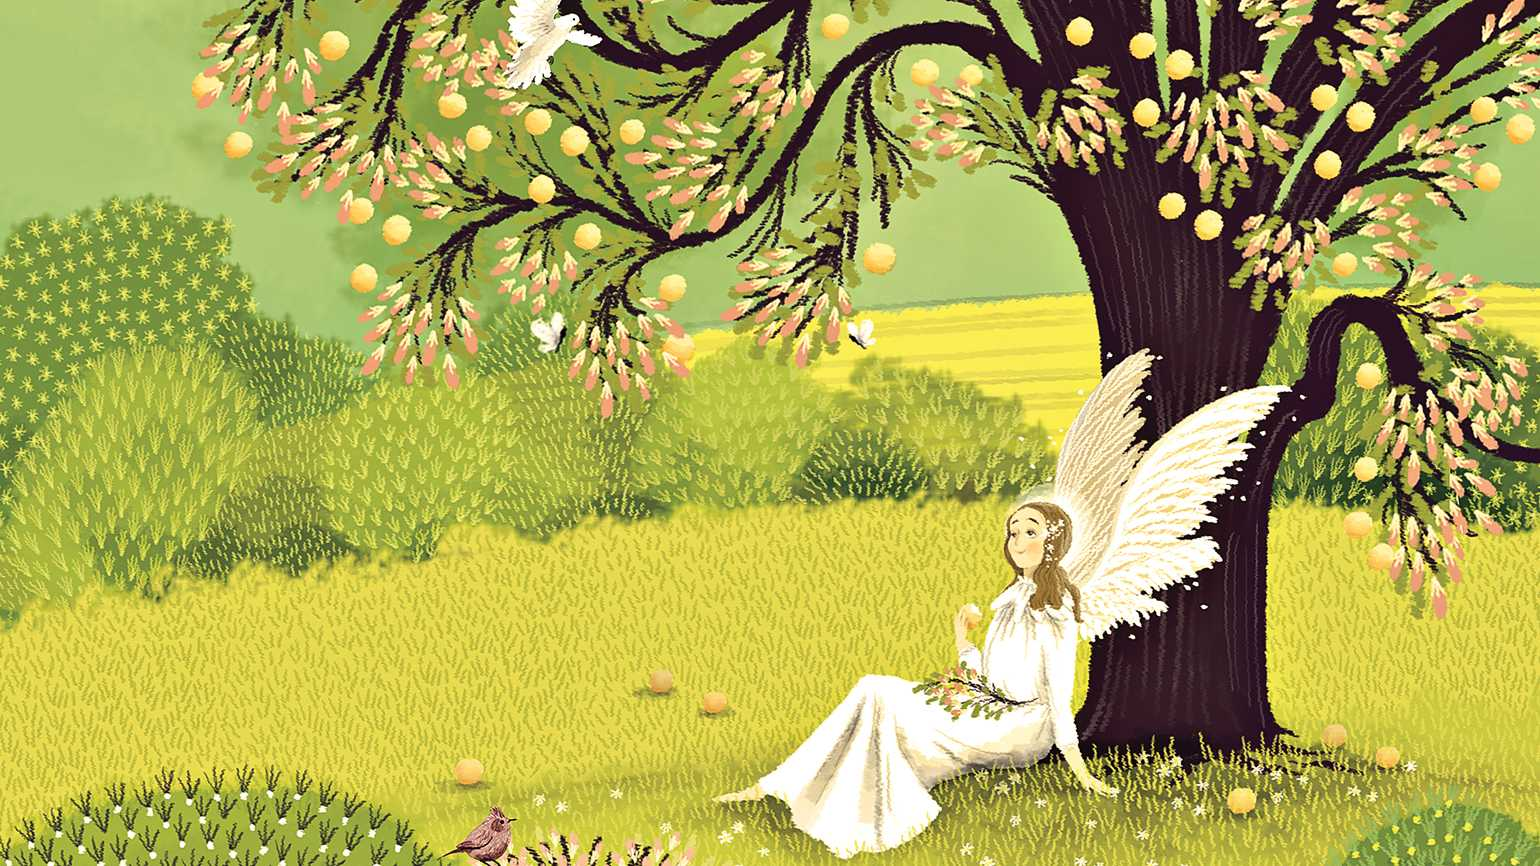 An artist's rendering of an angel sitting under an asian pear tree.